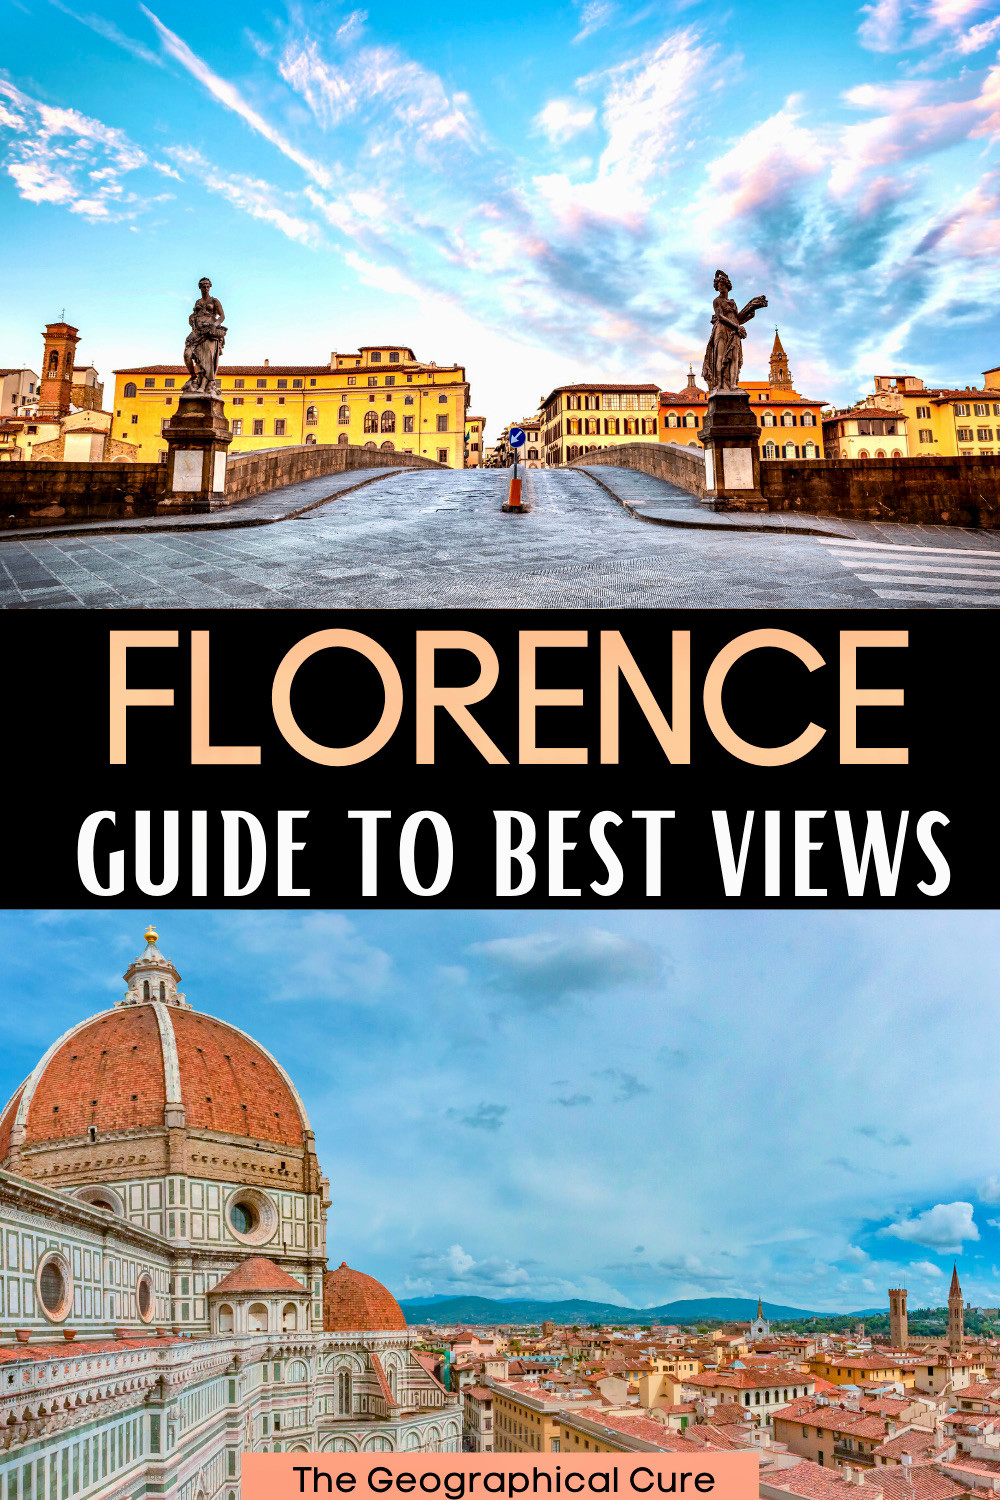 guide to the best views in Florence